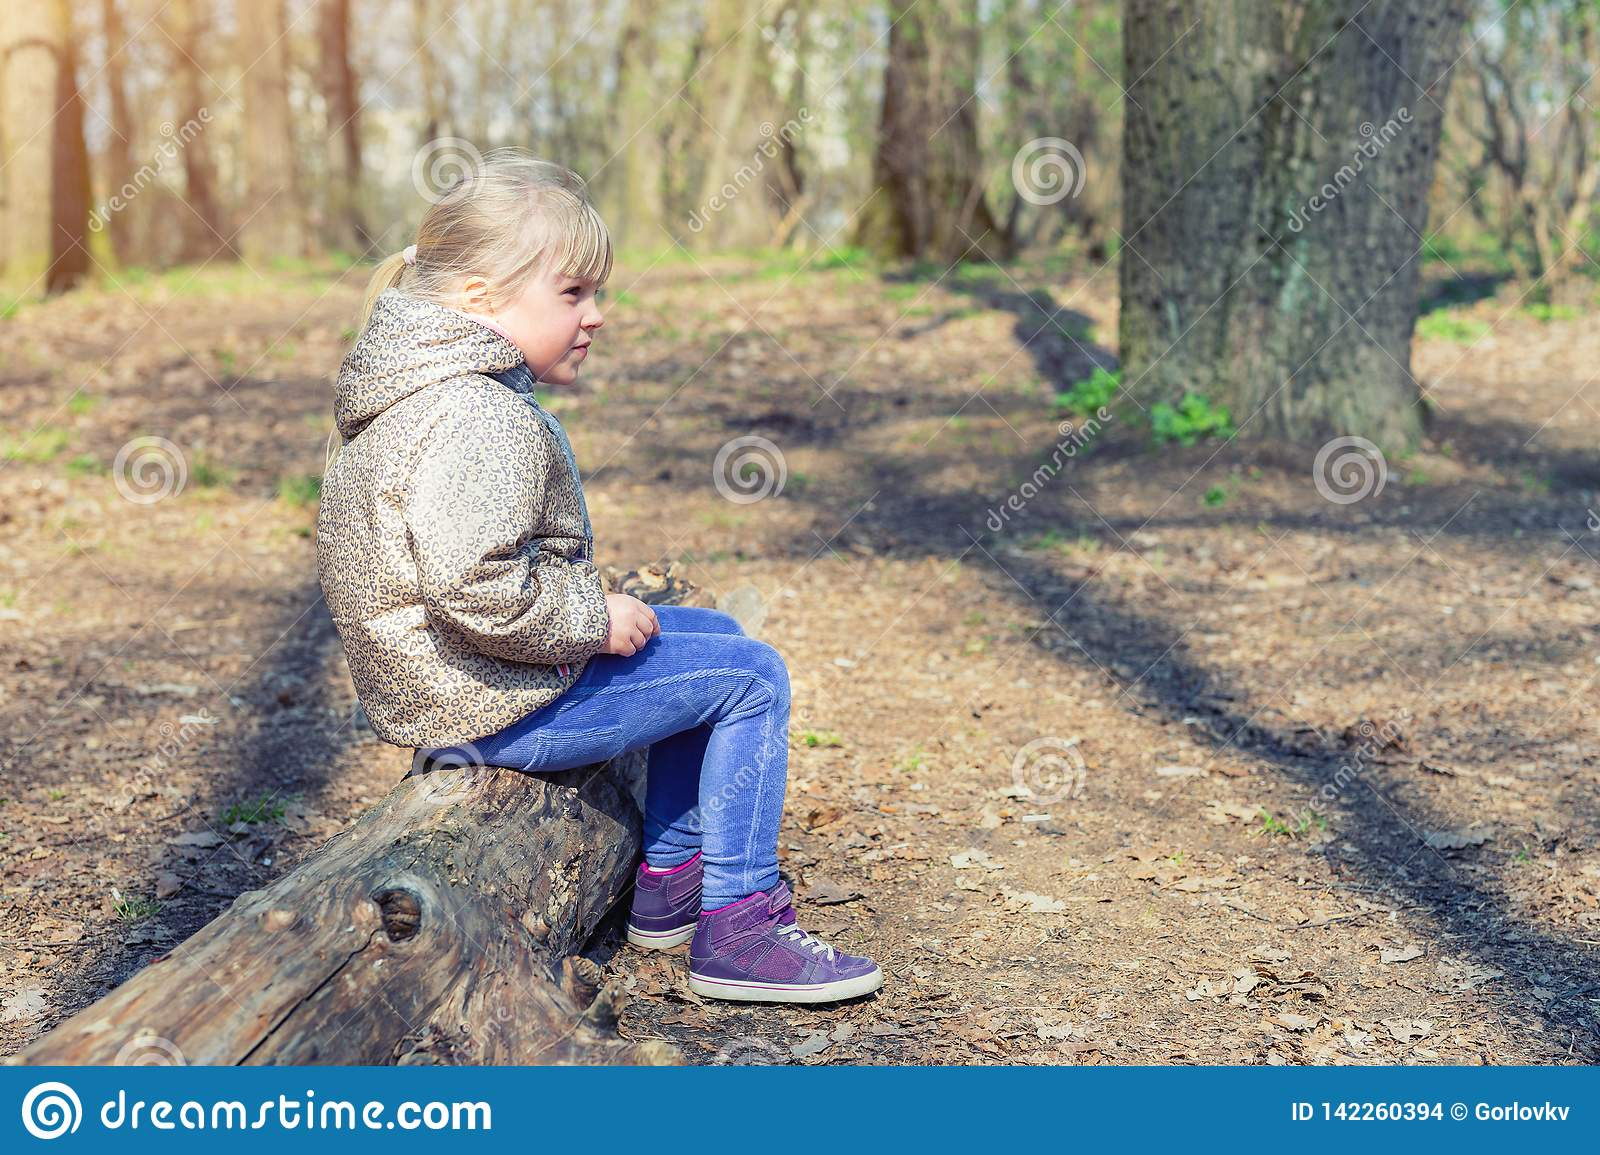 Cute little caucasian blond girl sittng on wooden log in forest and looking somewhere. Adorable pensive child dreaming about